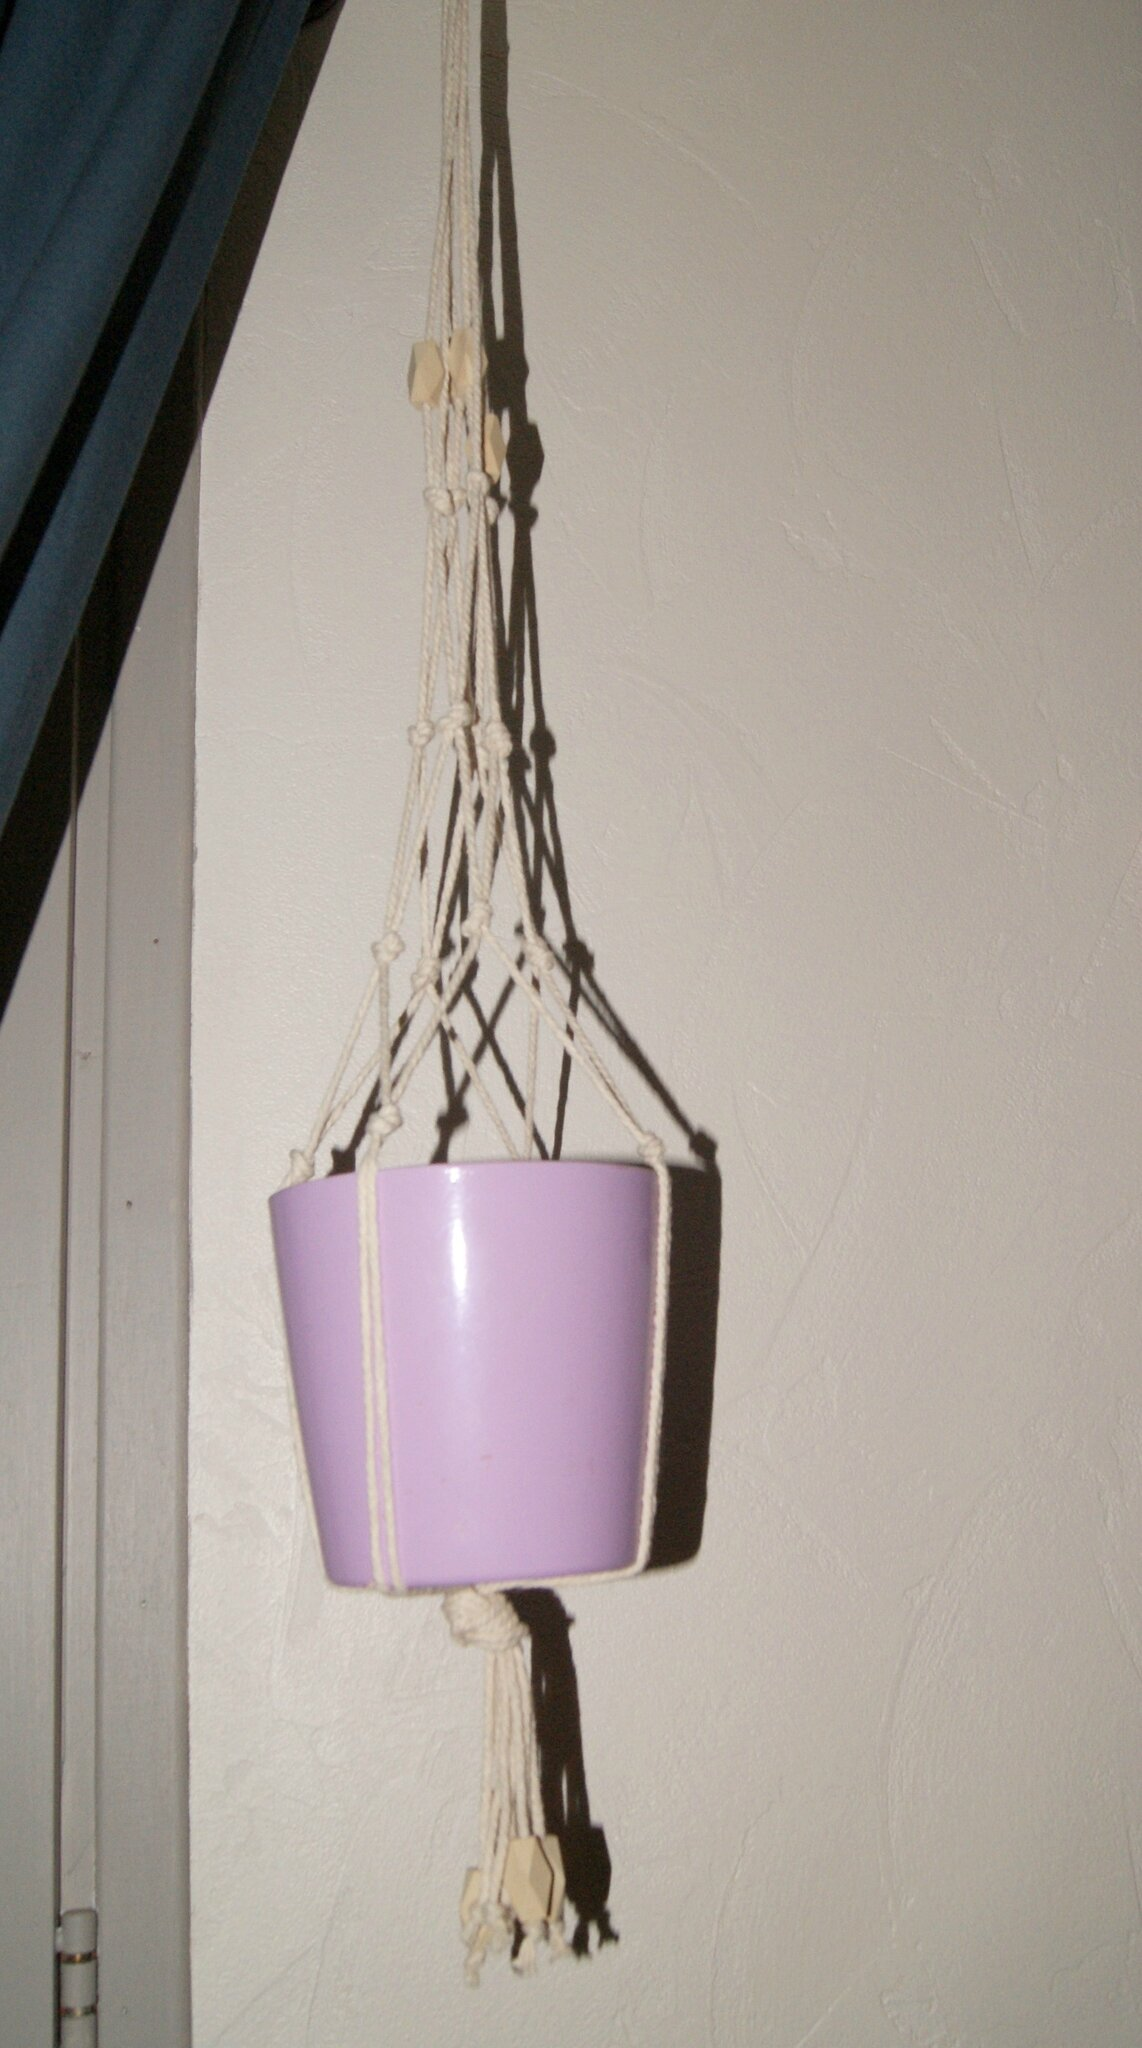 Diy suspension macram mon grain de sel - Comment faire une suspension en macrame ...